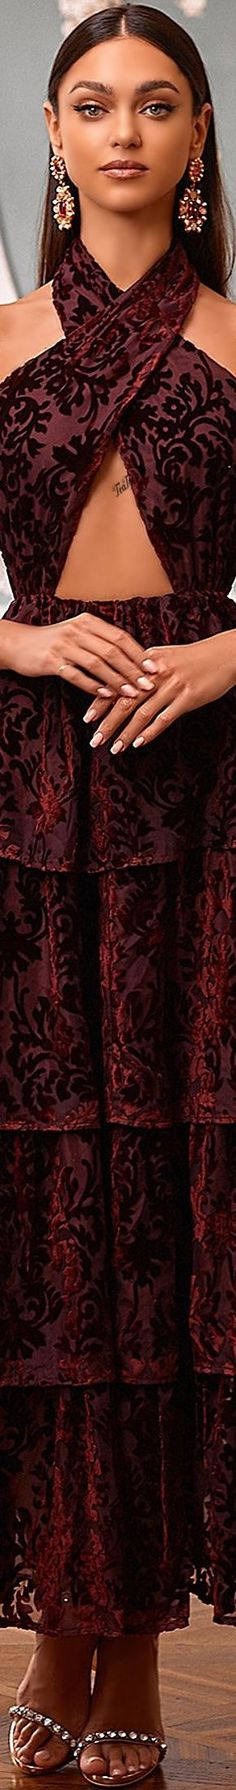 ❈Téa Tosh❈ #alamourthelabel #teatosh #ZhenyaKatava Alamour The Label, Burgundy Fashion, The Libertines, Luxury Lifestyle Fashion, Shades Of Burgundy, Evening Cocktail, Beautiful Gowns, Ball Gowns, Fashion Accessories